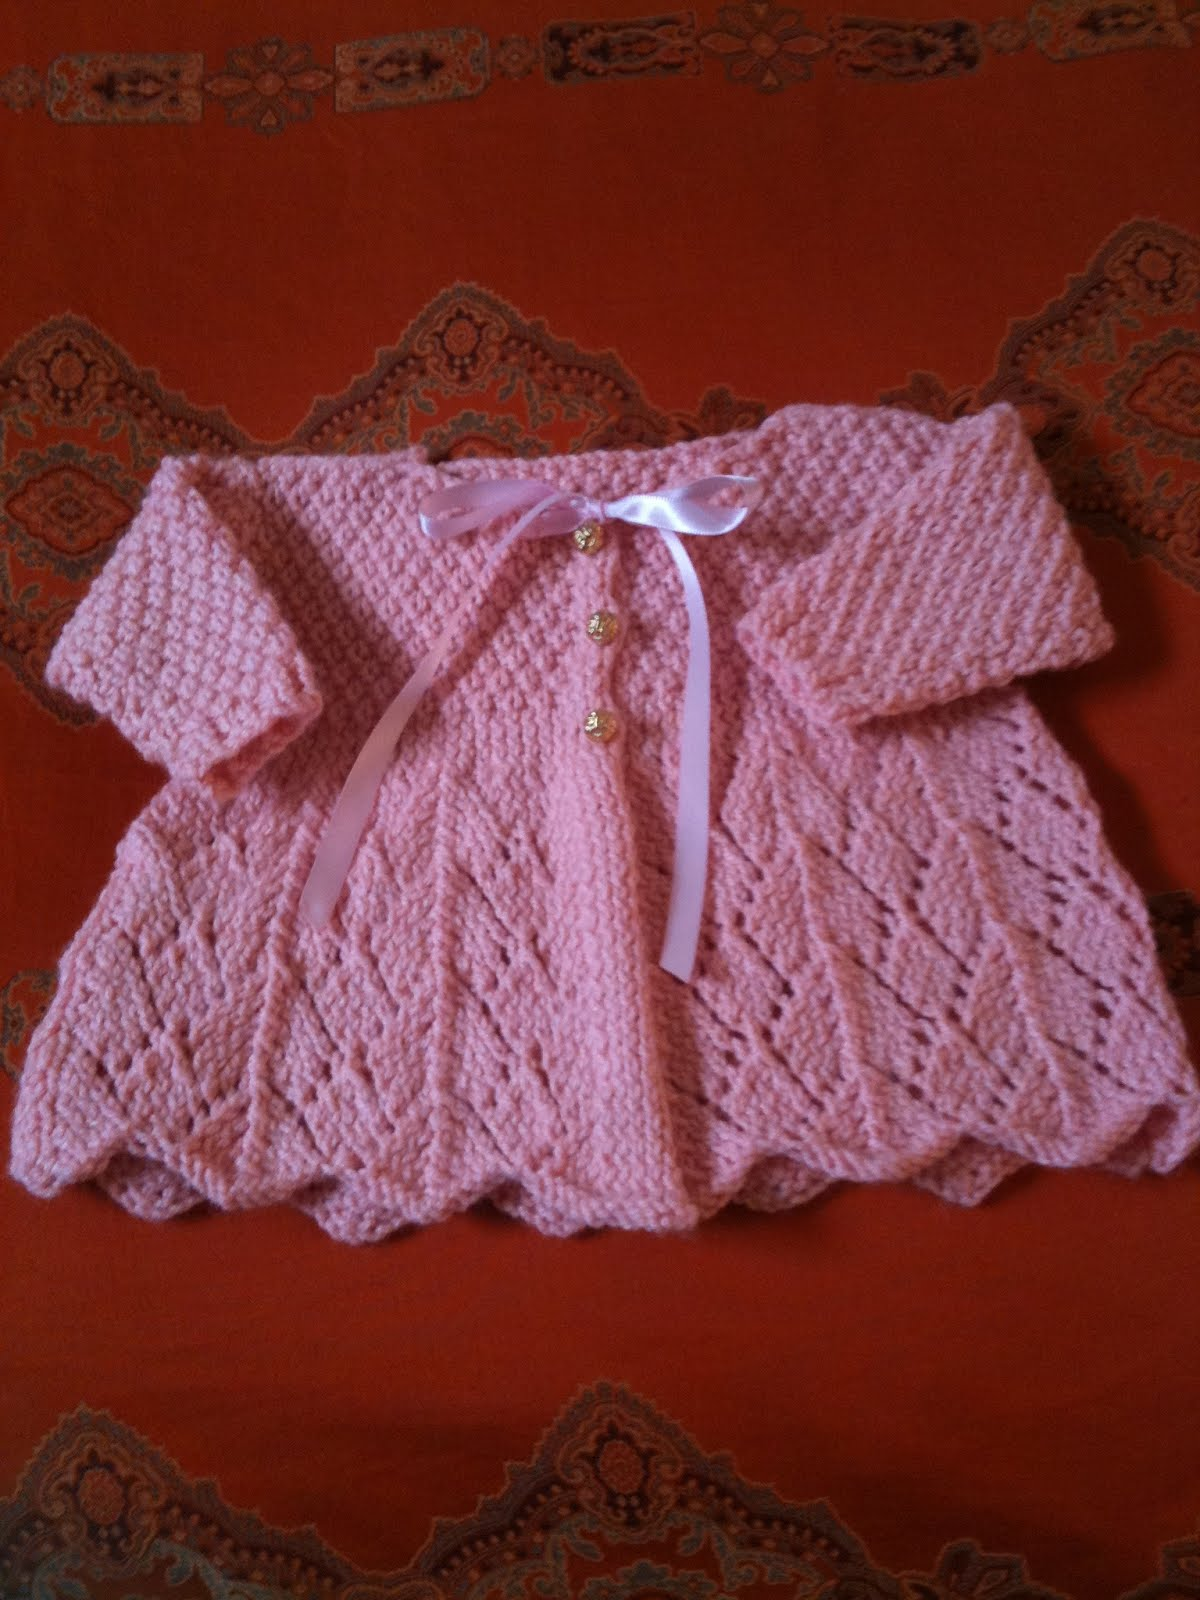 Knitting Pattern Sweater Lace : La Dolce Duchessa: Lace Baby Sweater